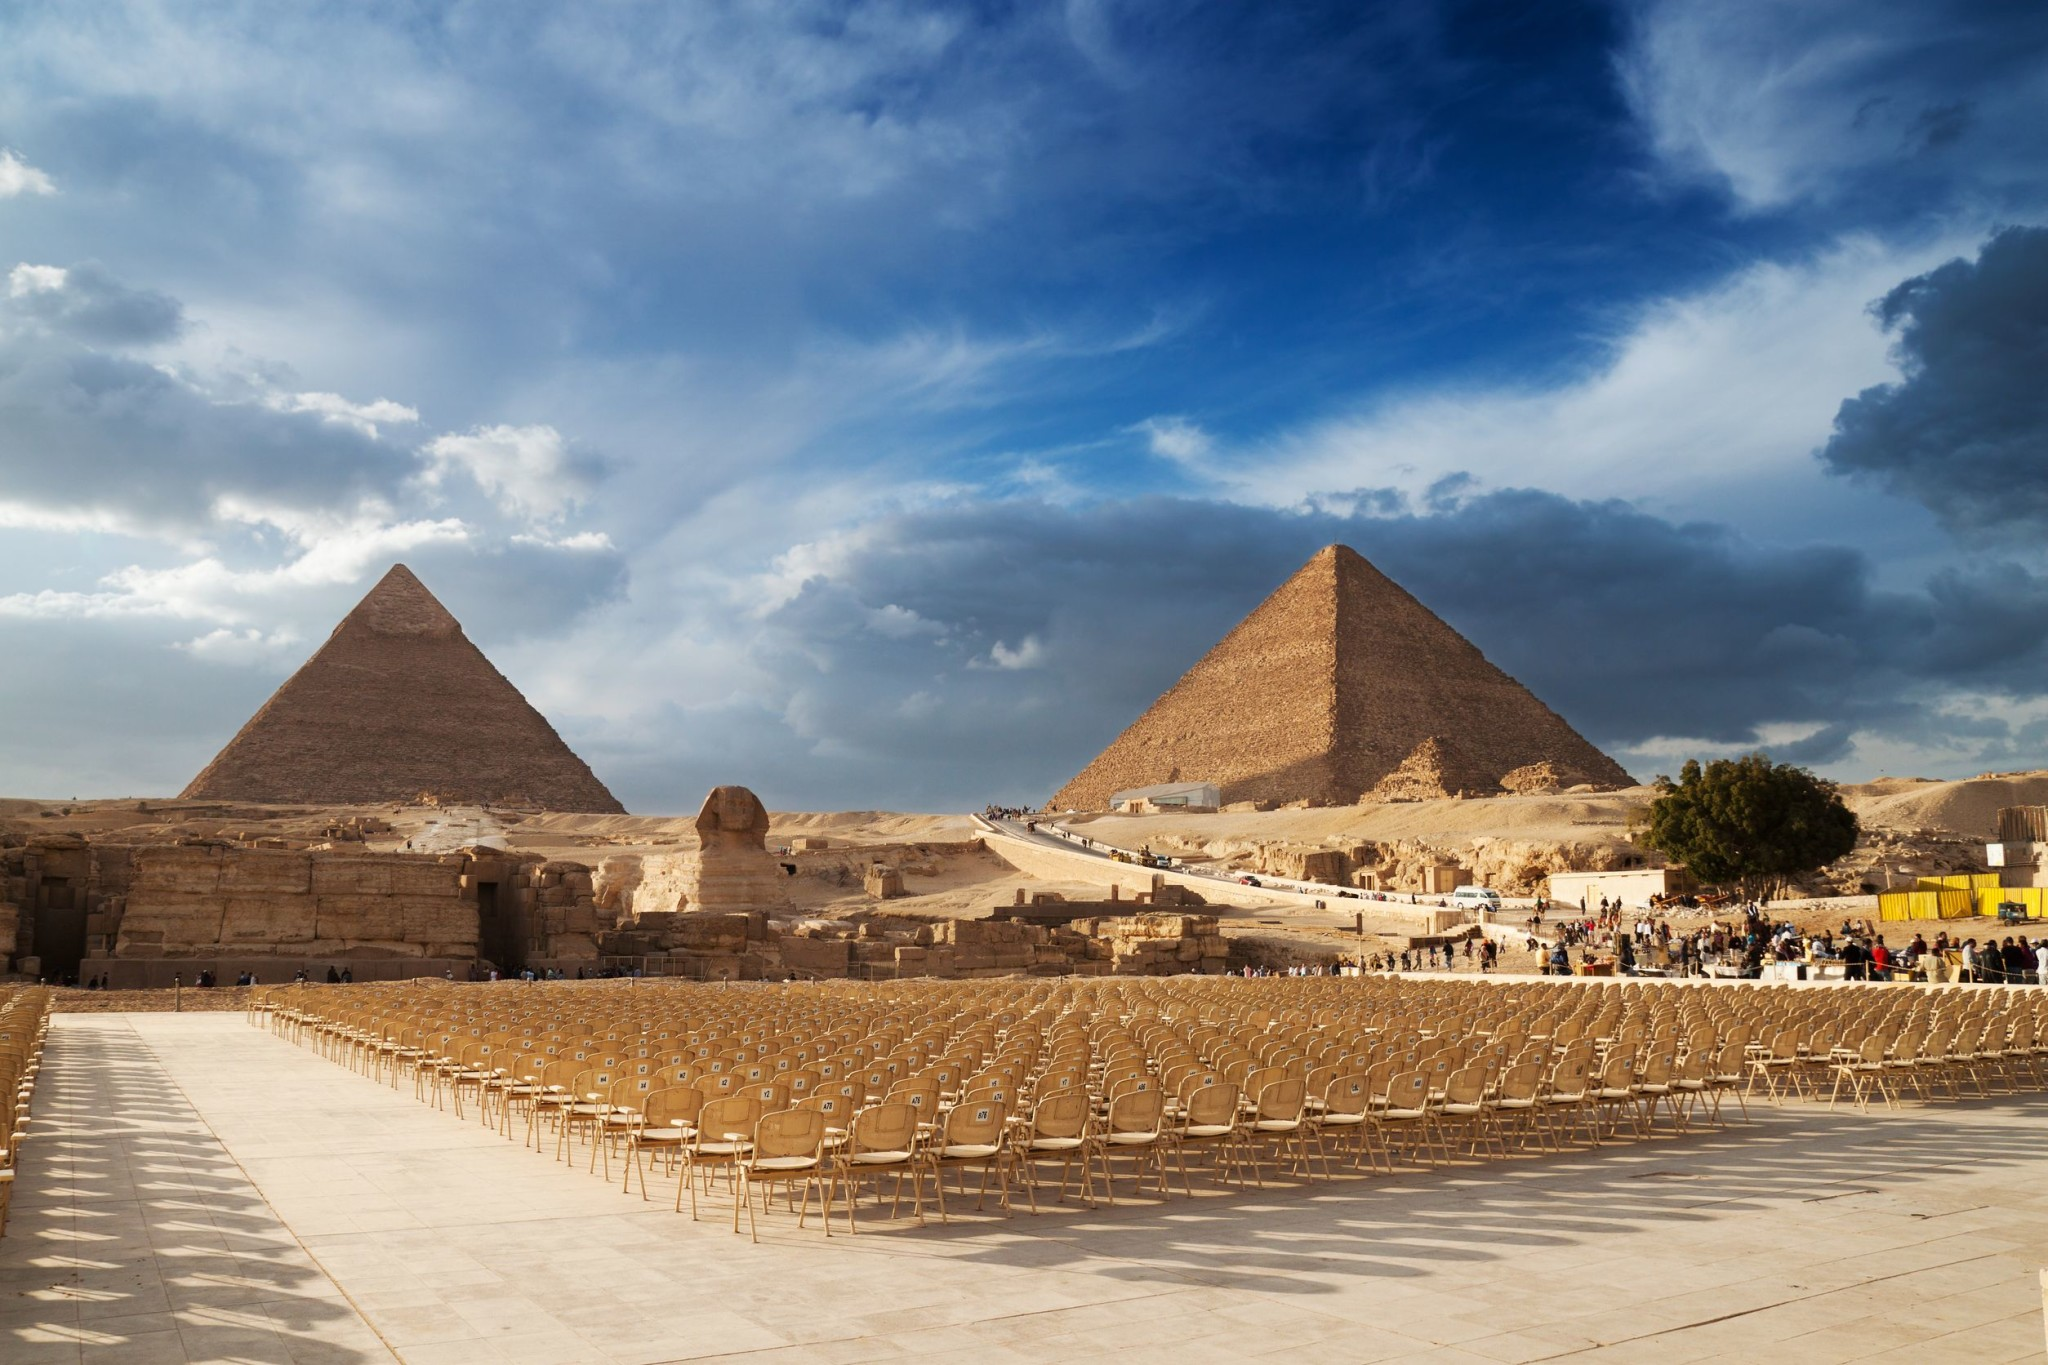 Cairo pyramids in Egypt